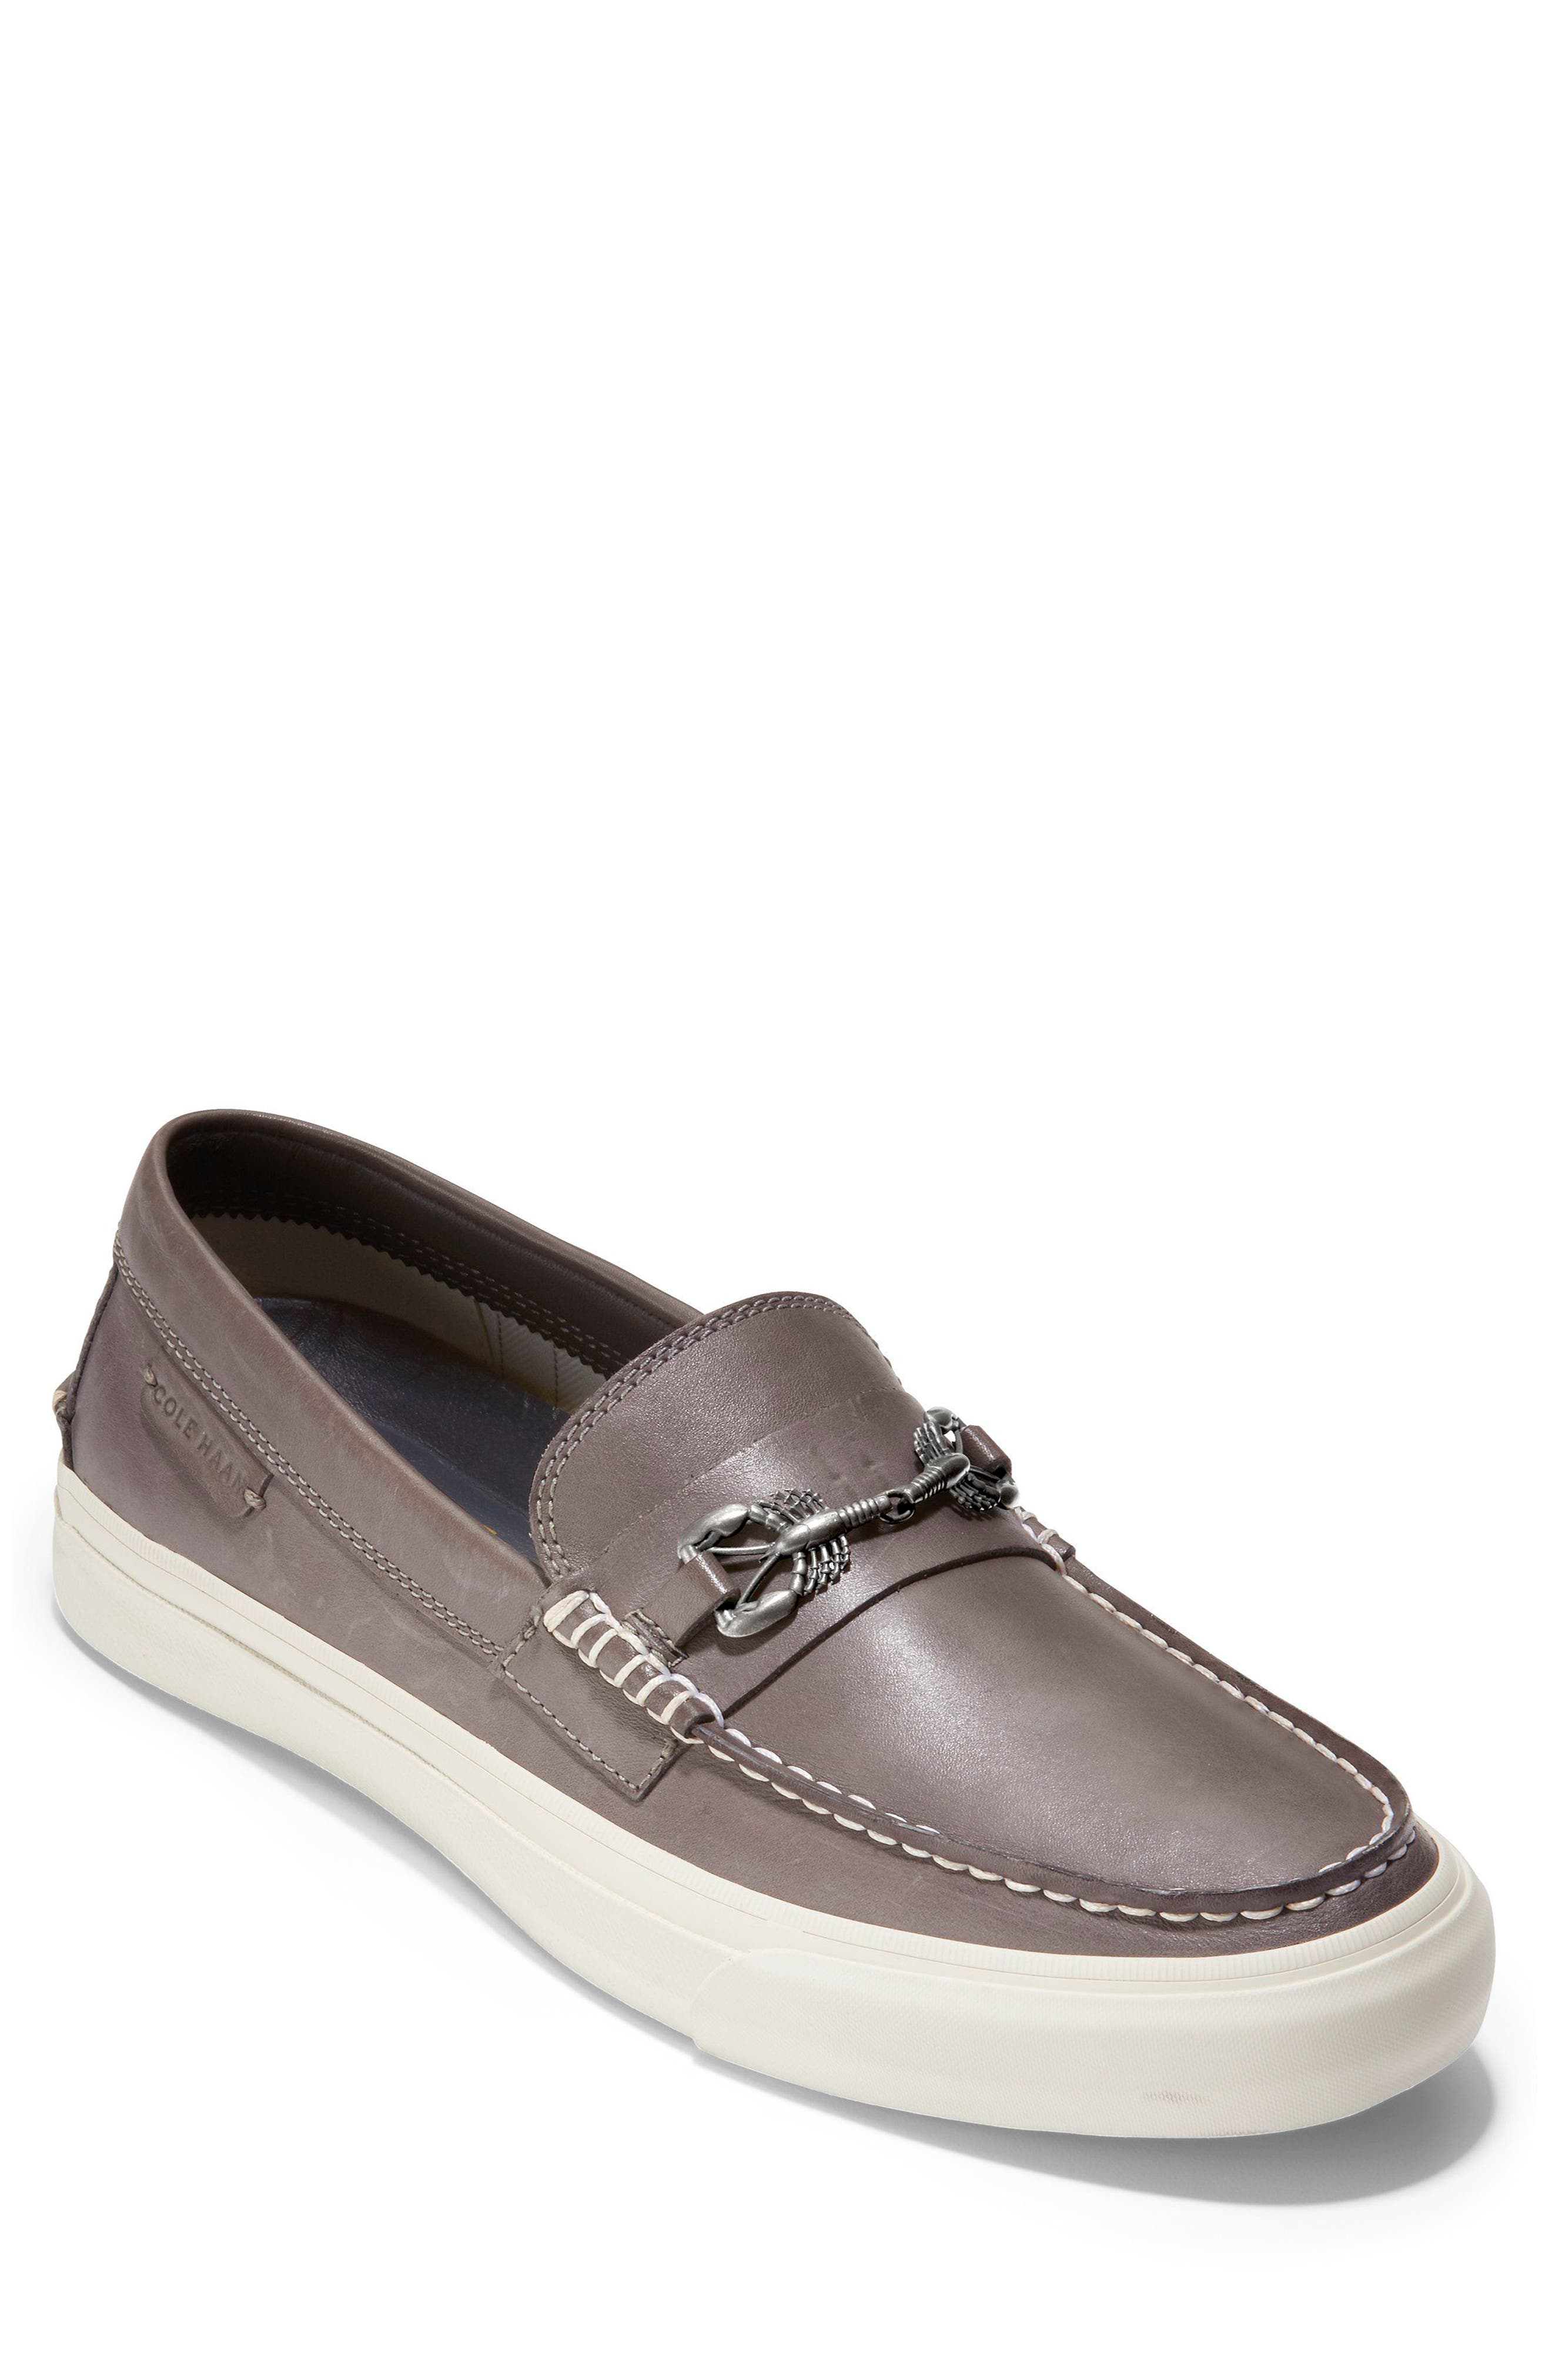 Pinch Weekend Loafer,                         Main,                         color, 020